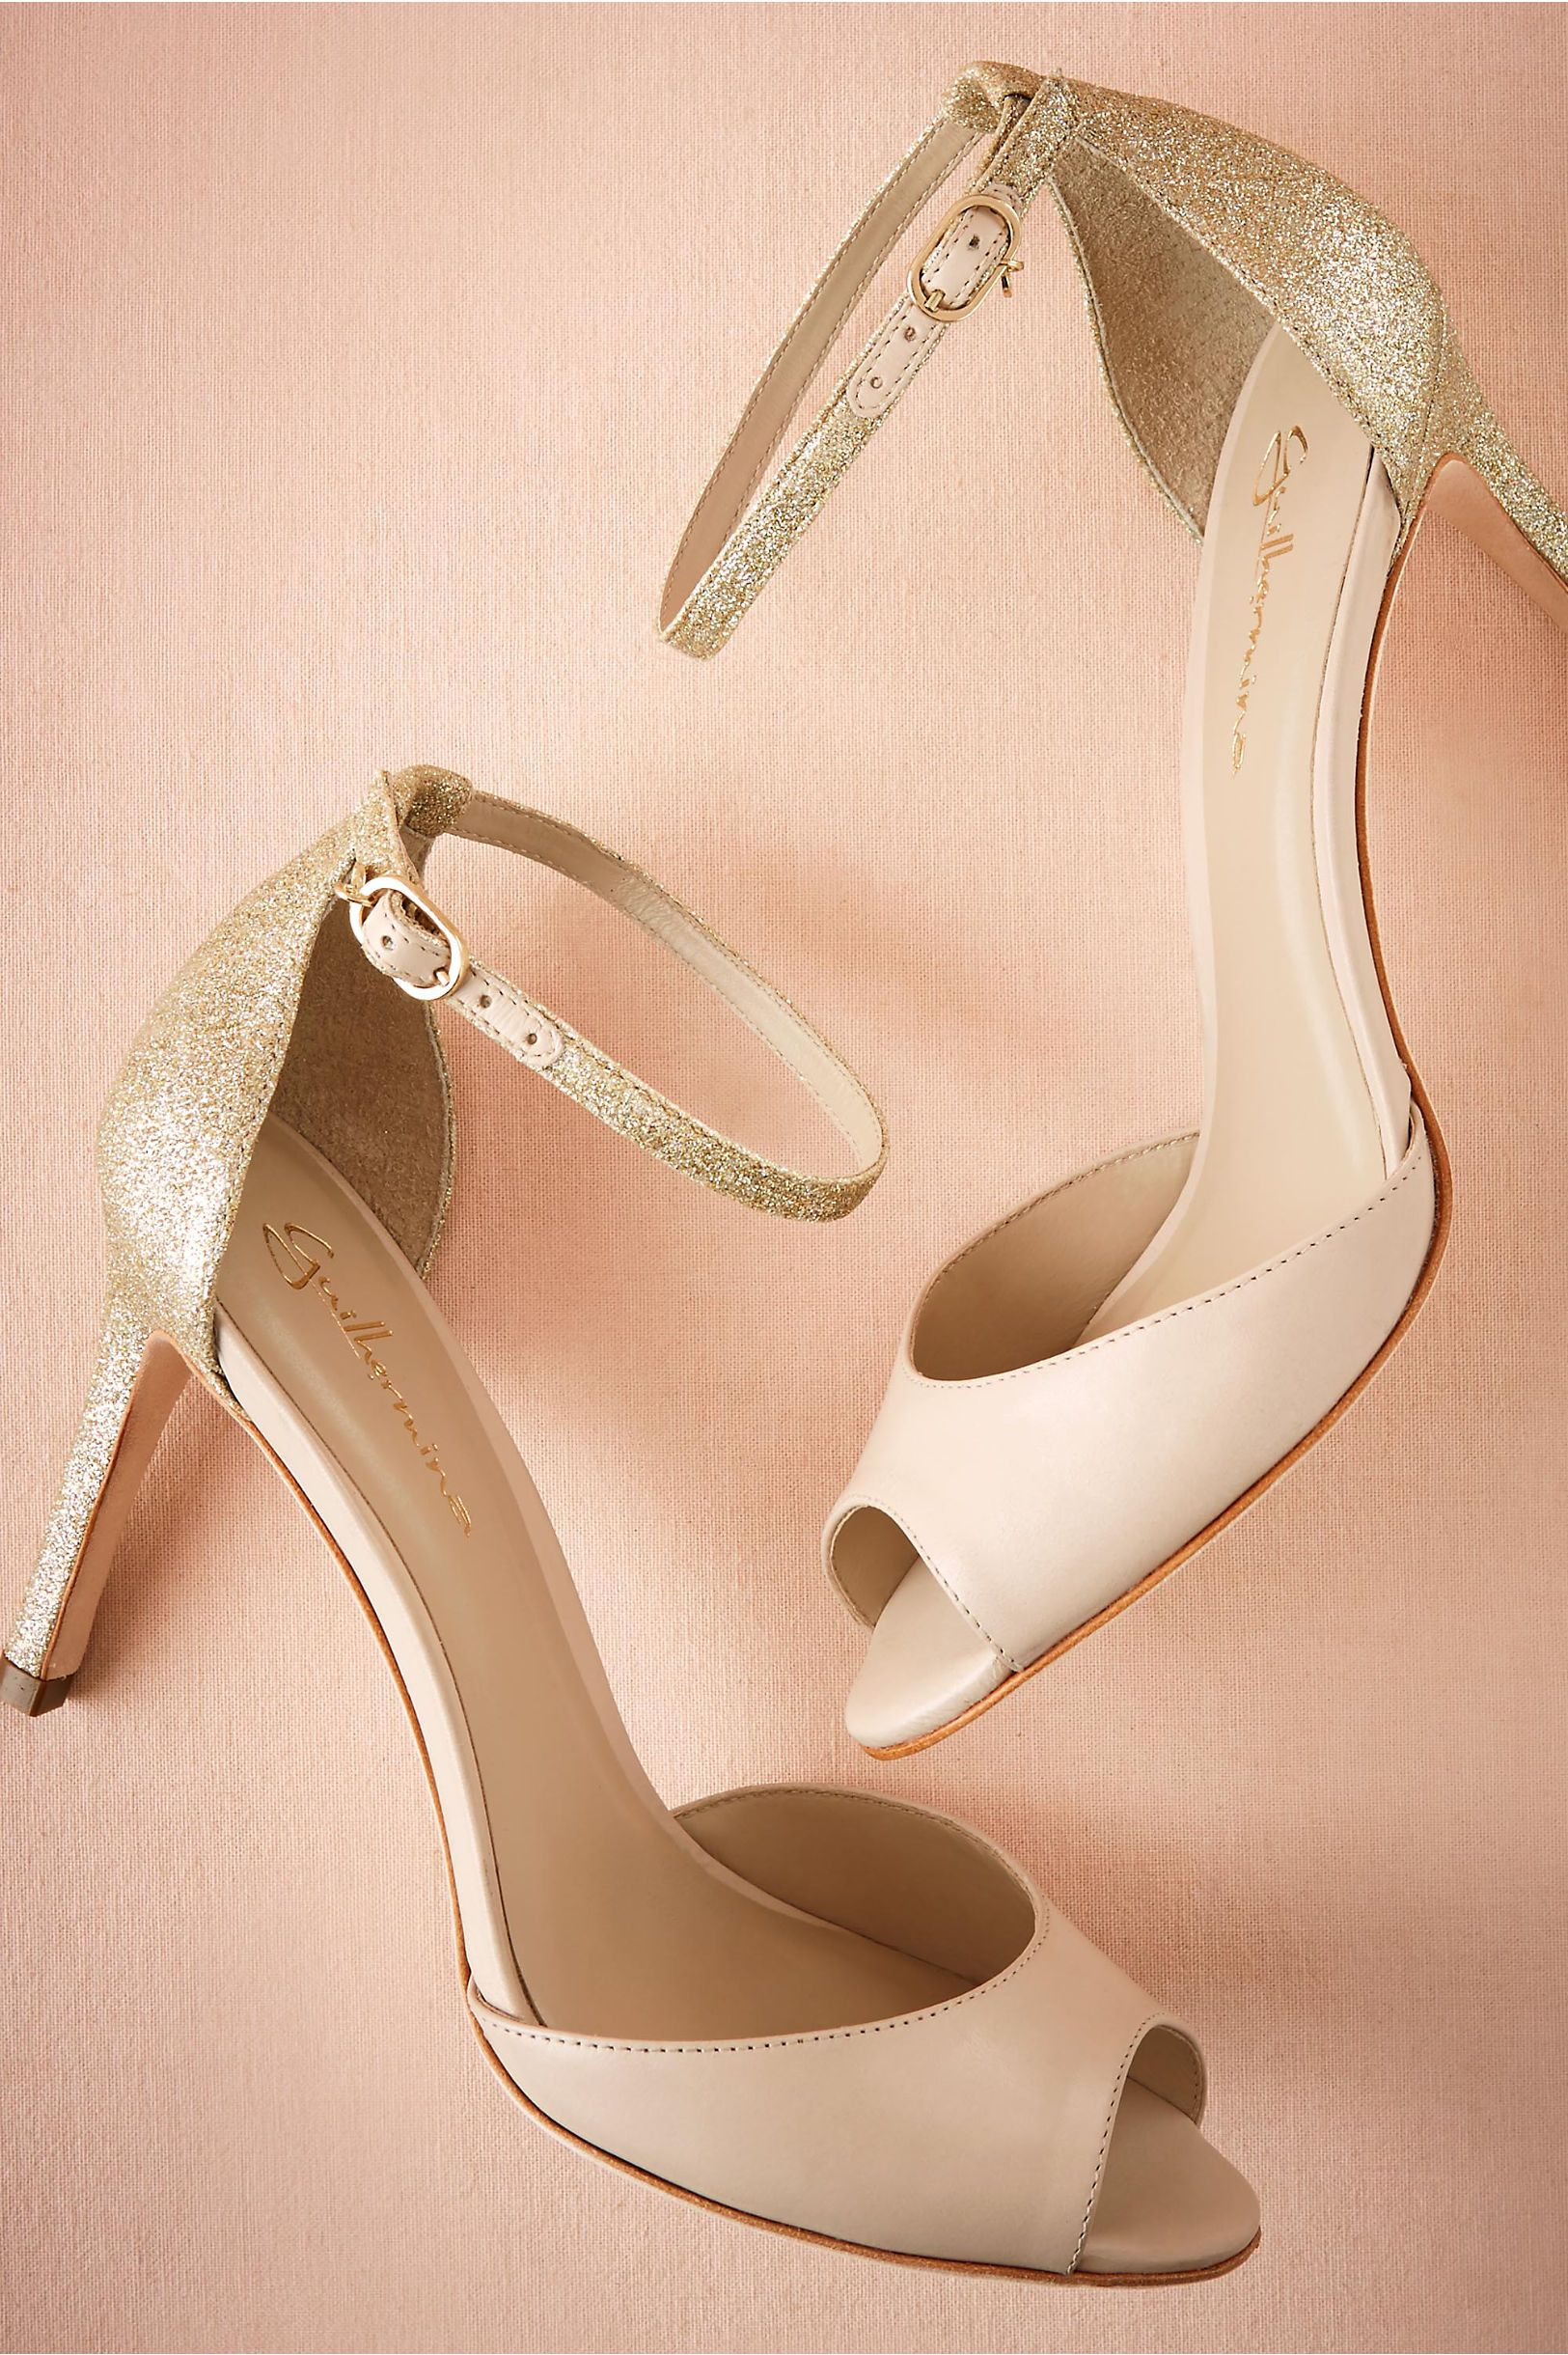 BHLDN Chandon Heels in  Shoes & Accessories Shoes at BHLDN